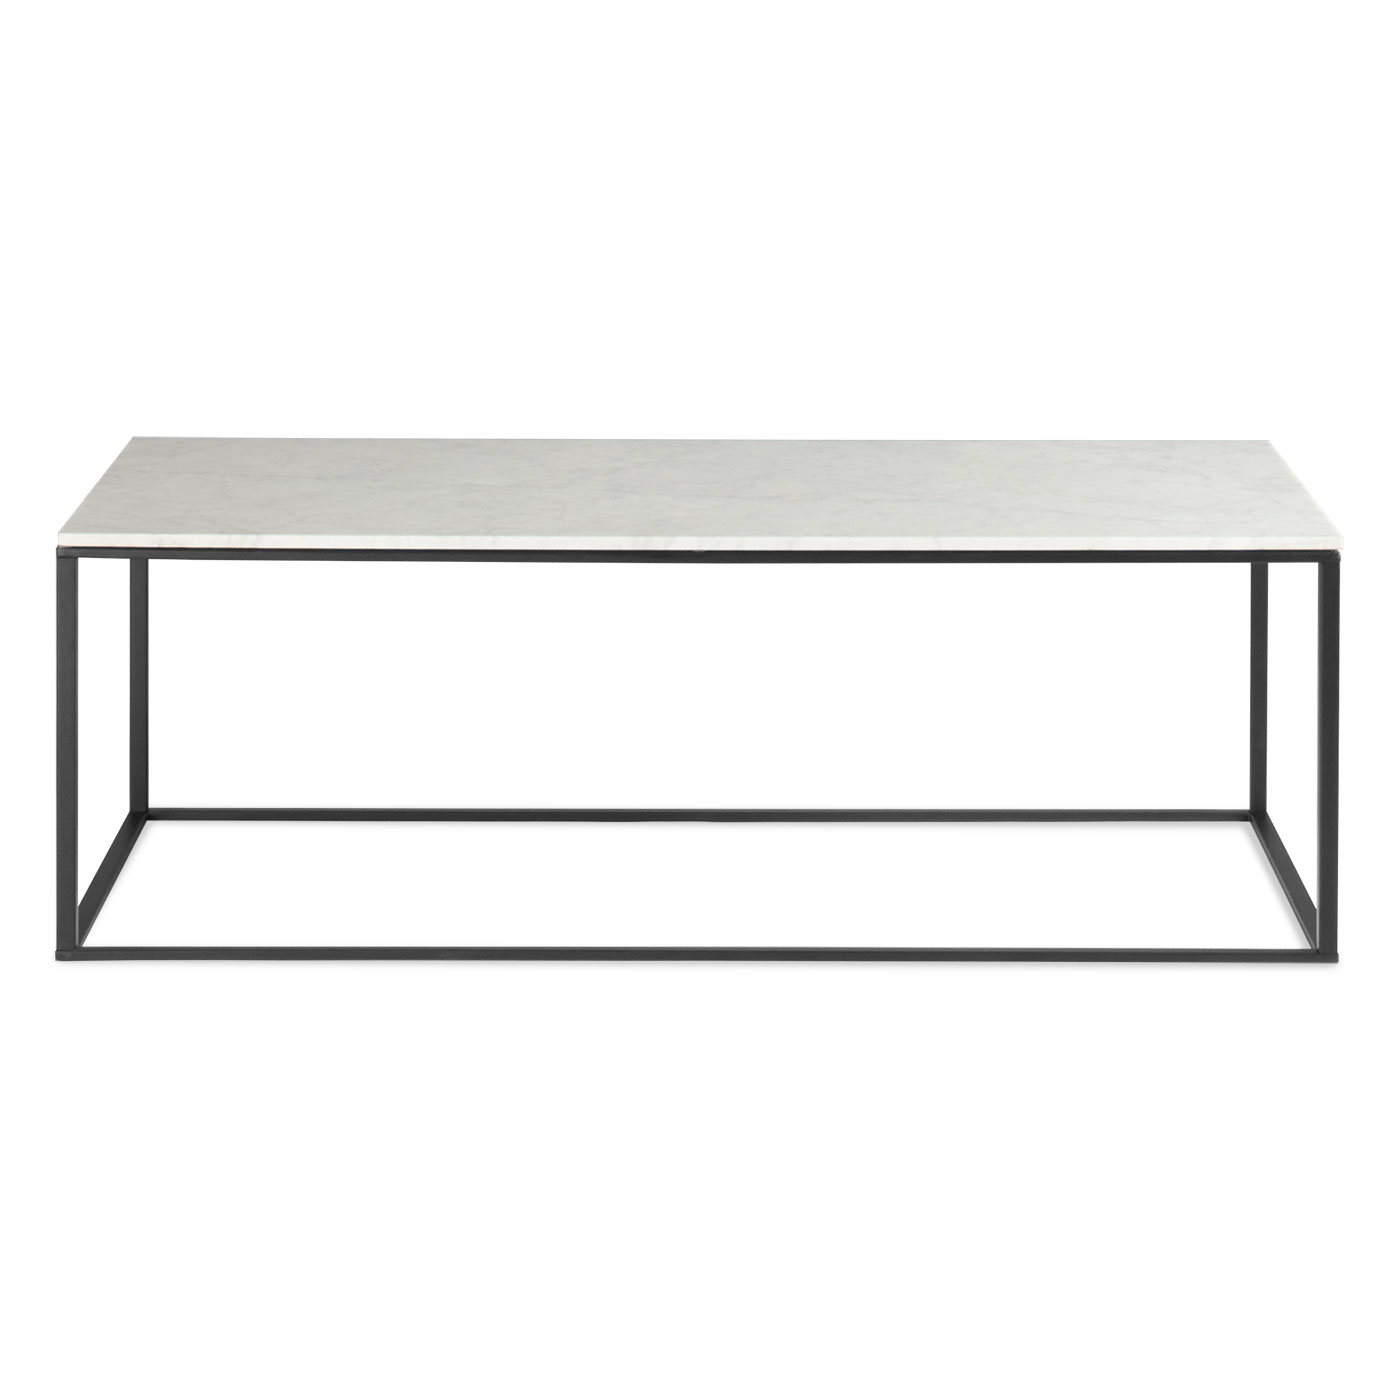 BLUDOT MINIMALISTA COFFEE TABLE BLACK BASE MARBLE WHITE TOP